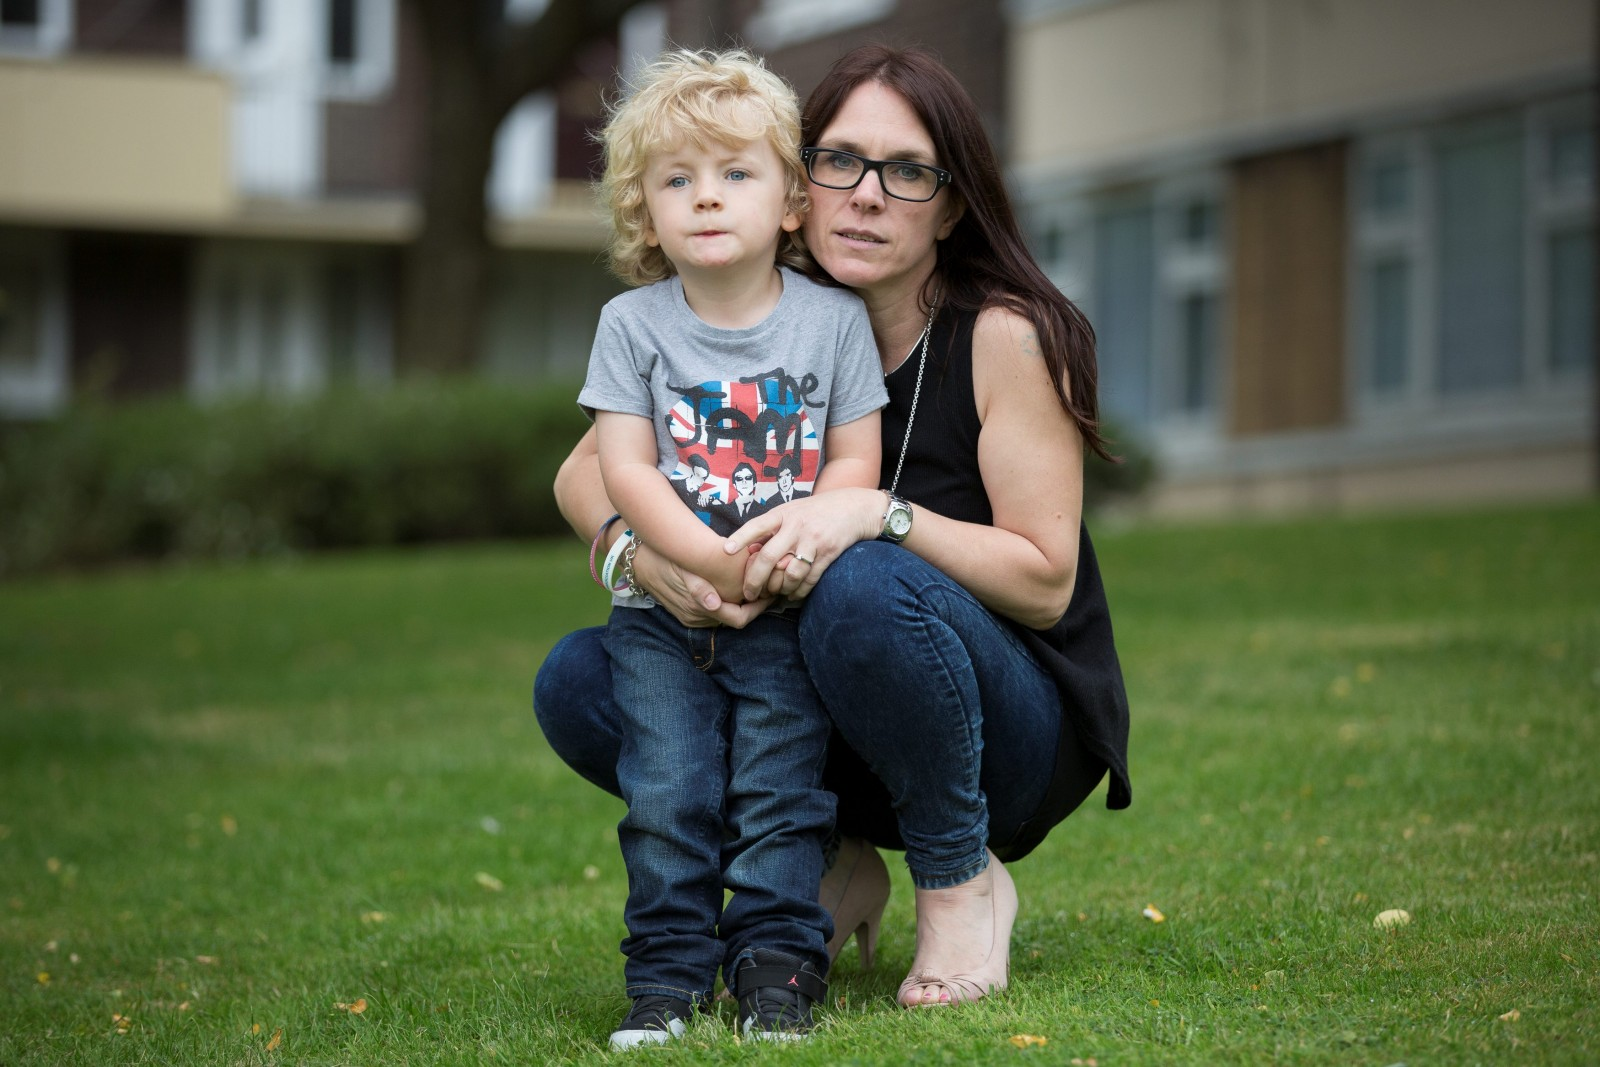 The three-year-old on a DIET. A mum's struggle to stop son from eating himself to death